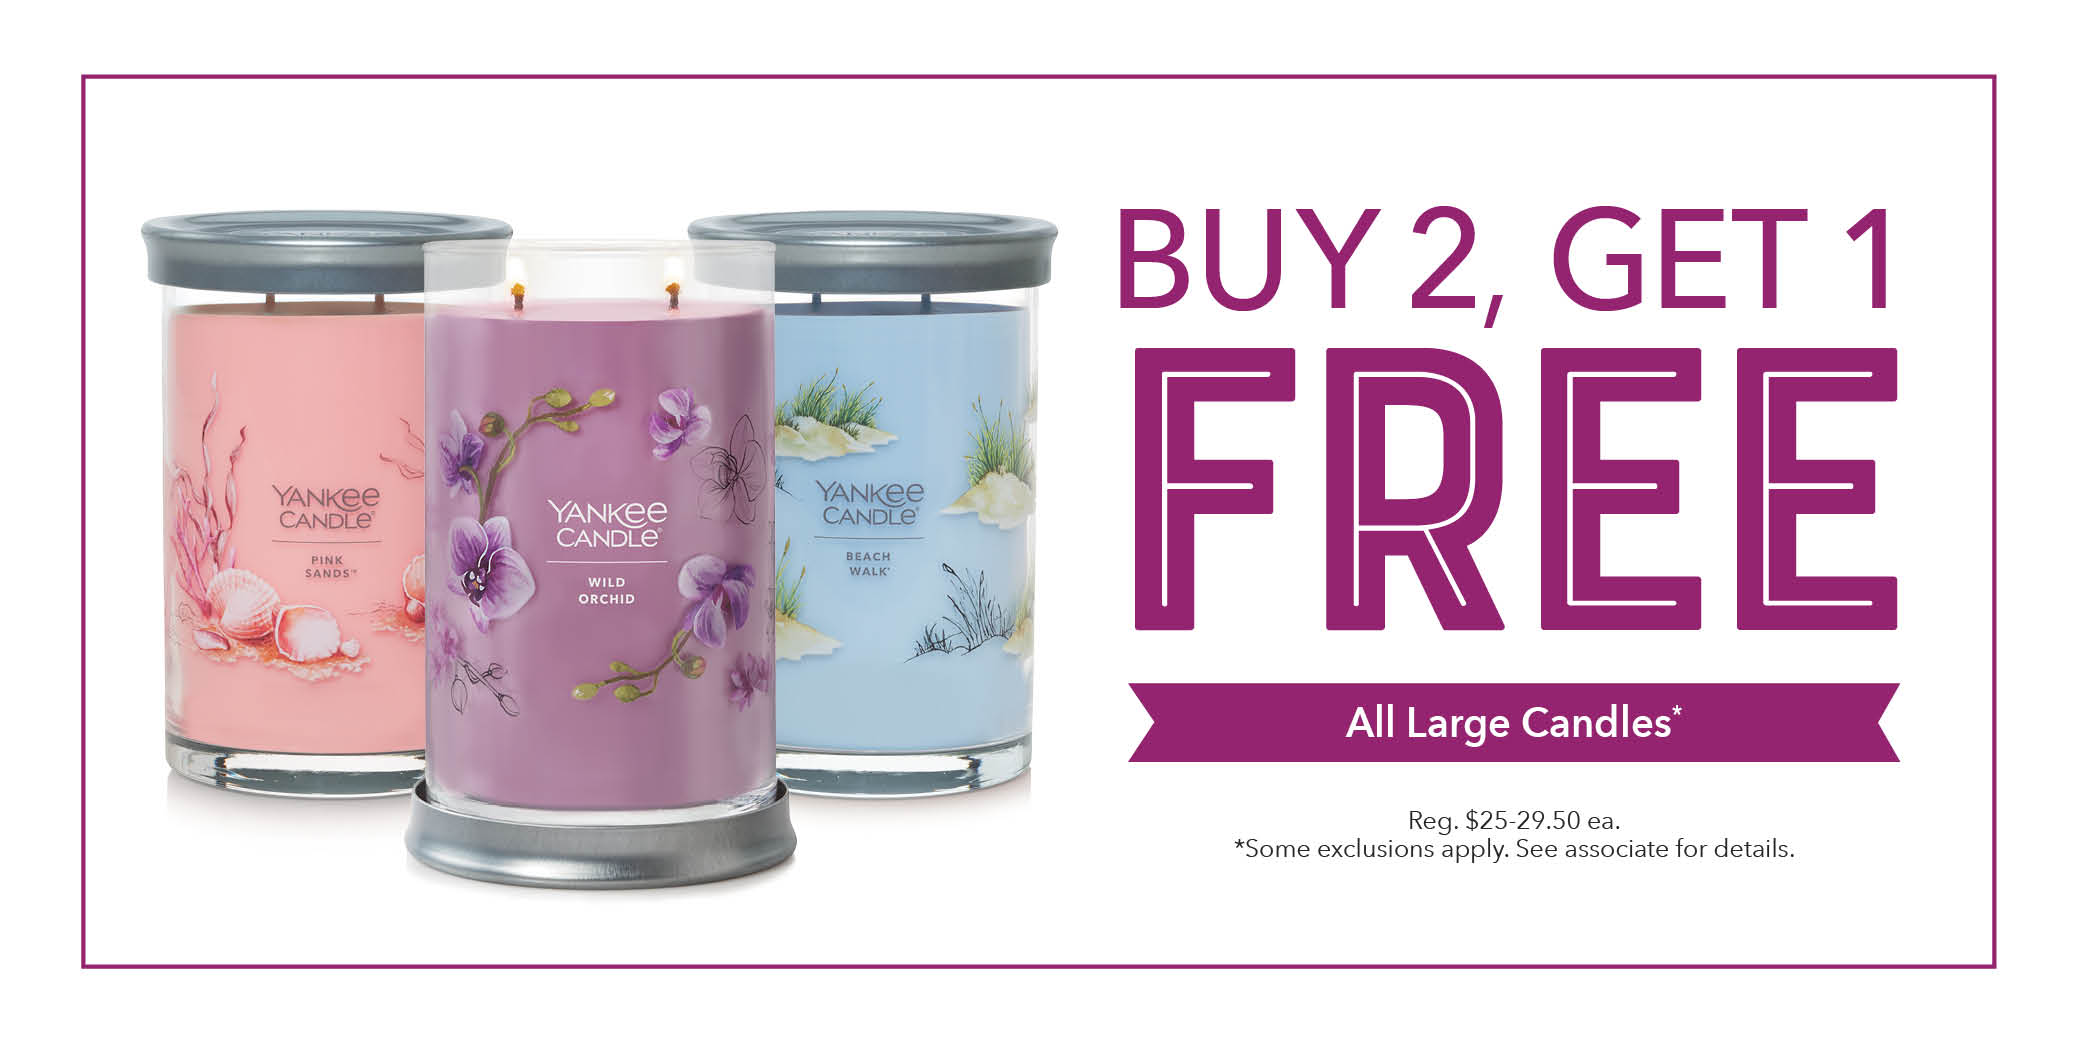 Yankee Candle - BUY 2 GET 1 FREE ALL LARGE CANDLES! from Yankee Candle